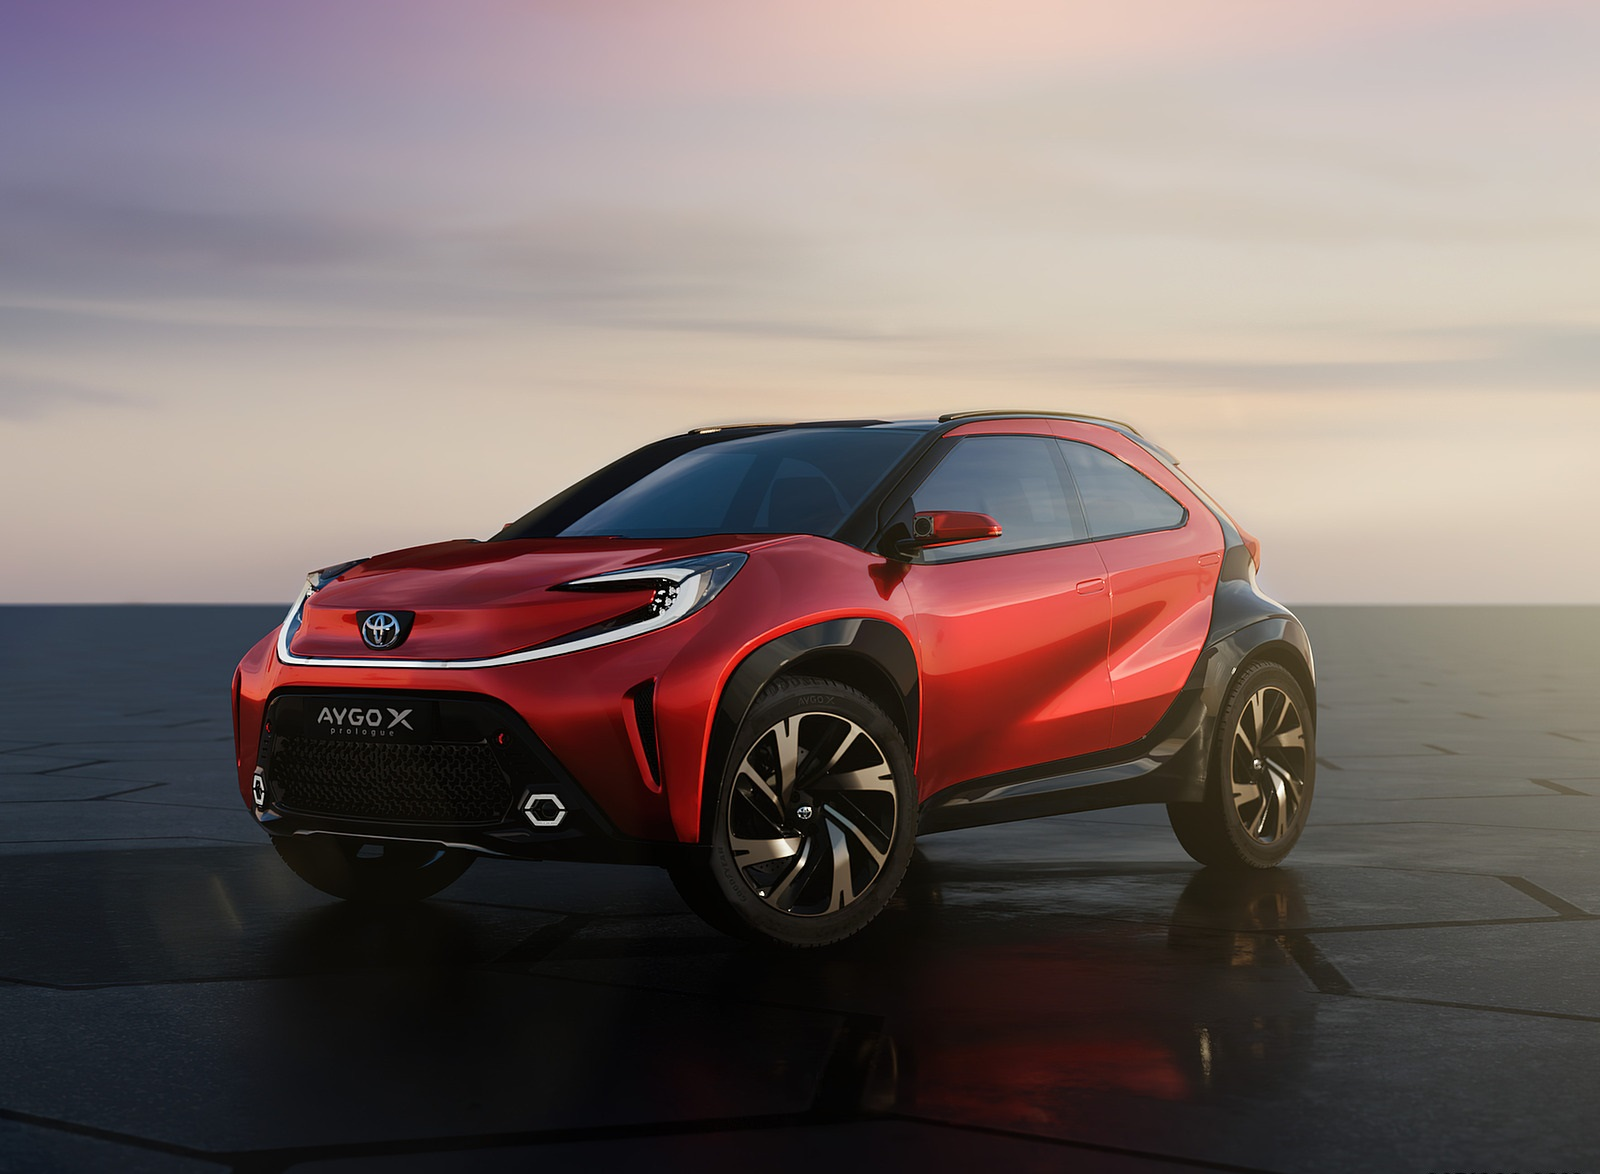 2021 Toyota Aygo X Prologue Concept Front Three-Quarter Wallpapers (8)